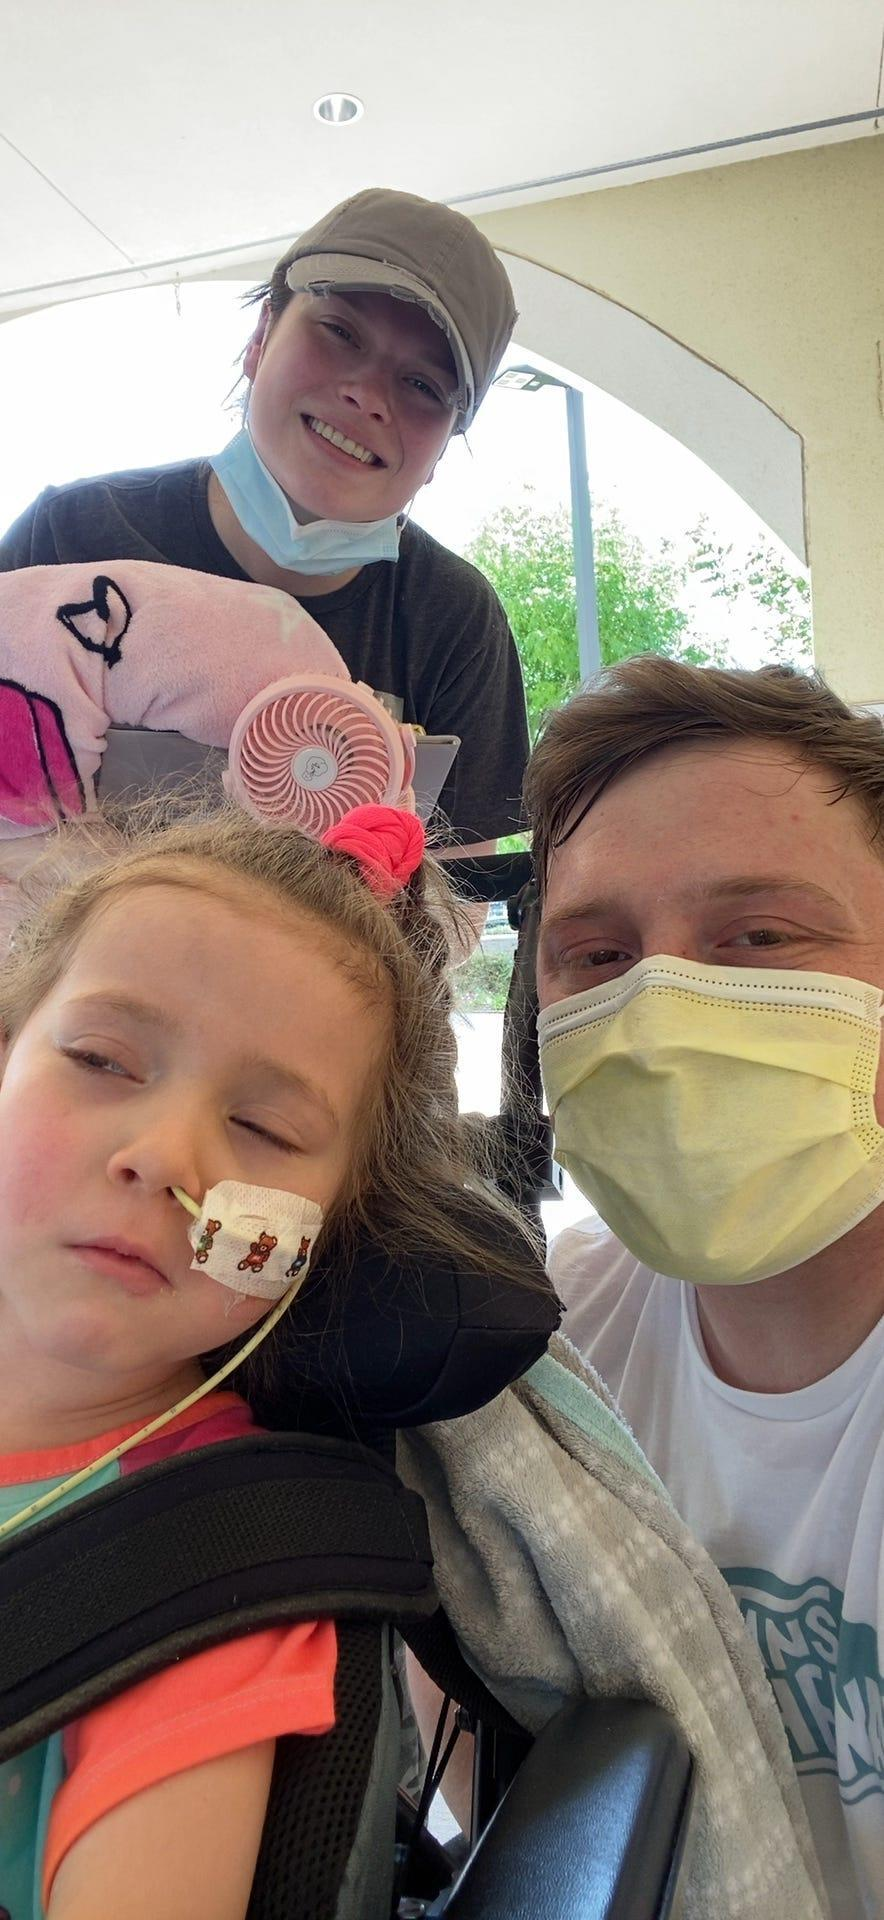 Lylah Baker continues to recover from melioidosis. She is with her parents, Josy and Dustin, on Monday at a rehabilitation hospital in Dallas.